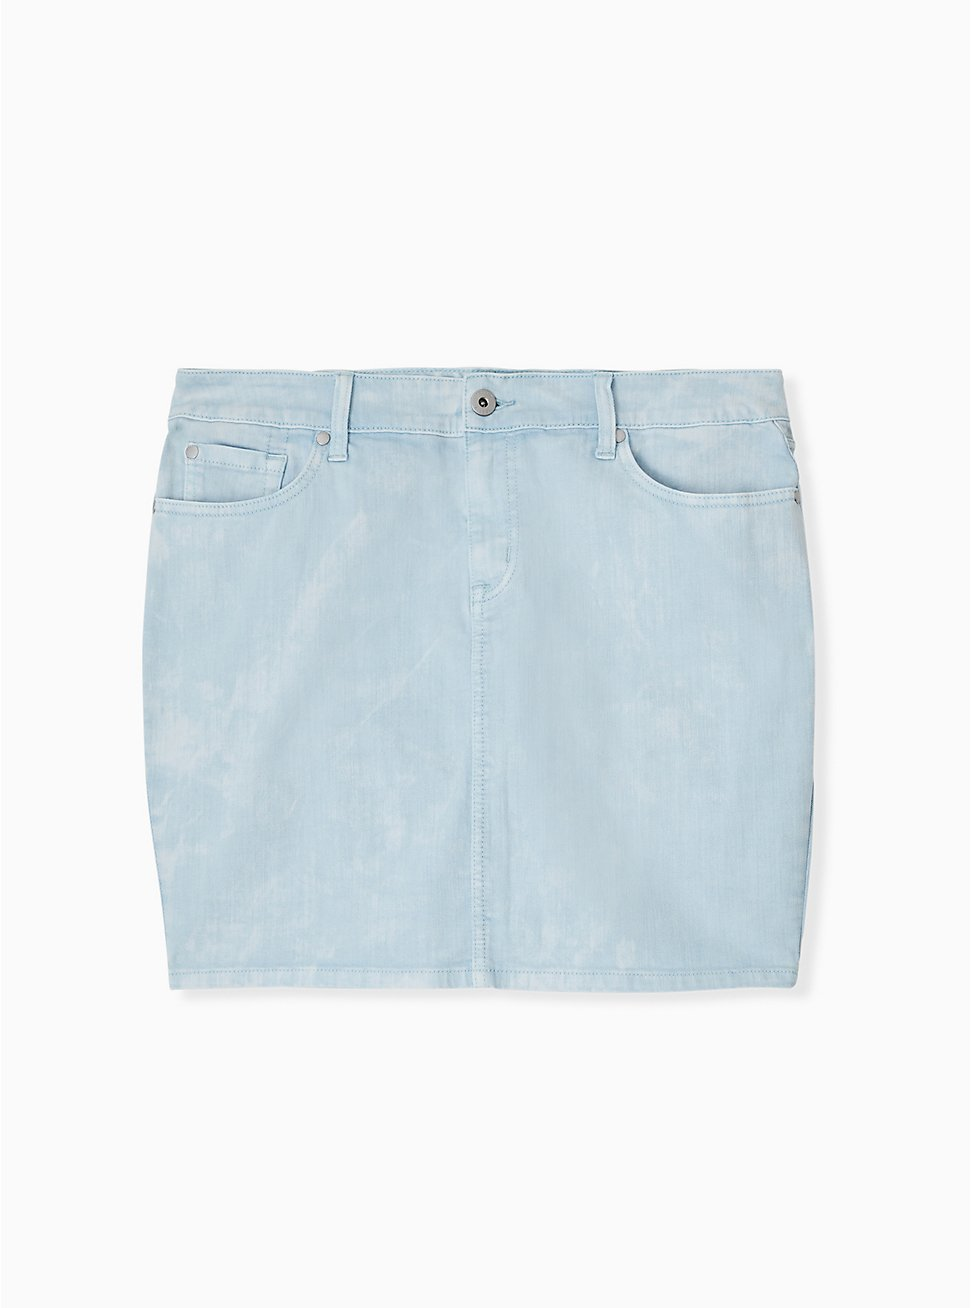 Denim Mini Skirt - Washed Light Blue , BABY BLUE, hi-res